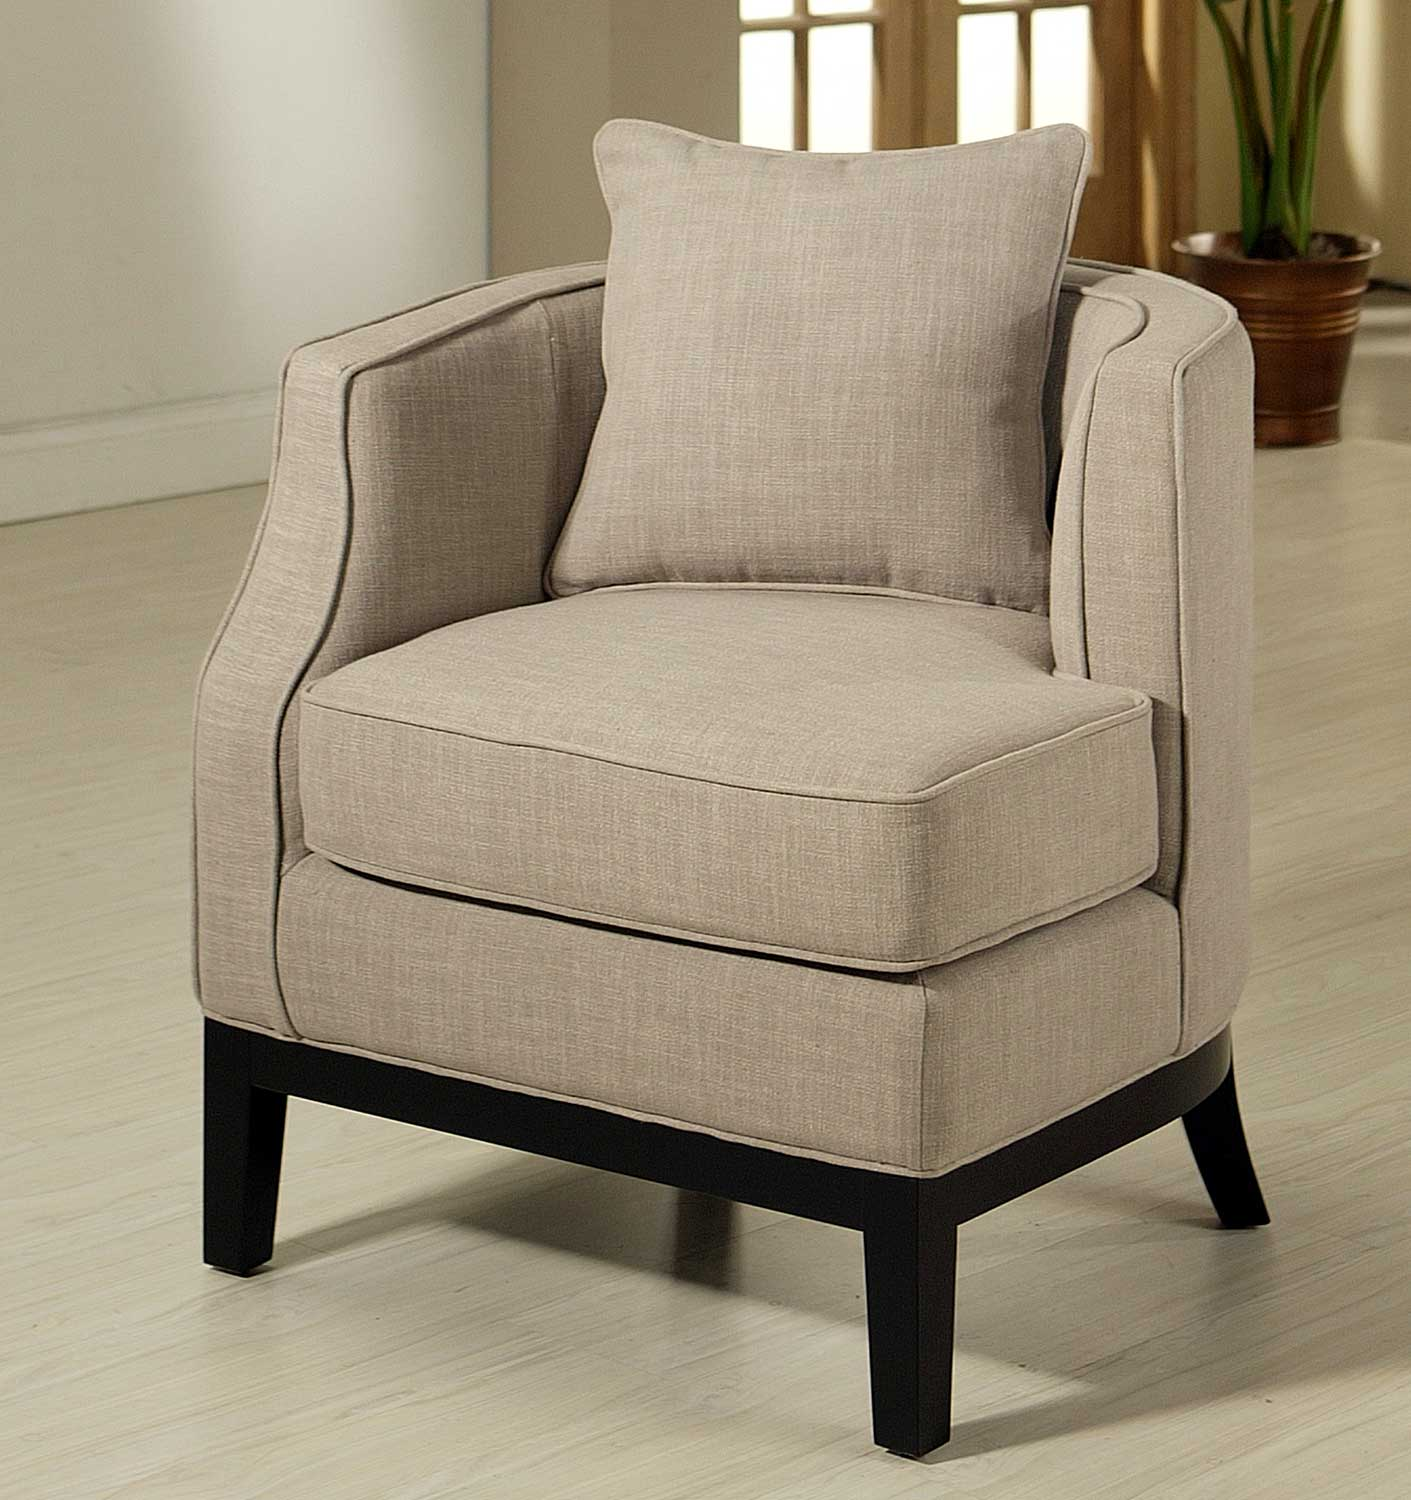 abbyson living thatcher fabric rocking chair in beige toddler comfy eve corner ab hs sf 2100